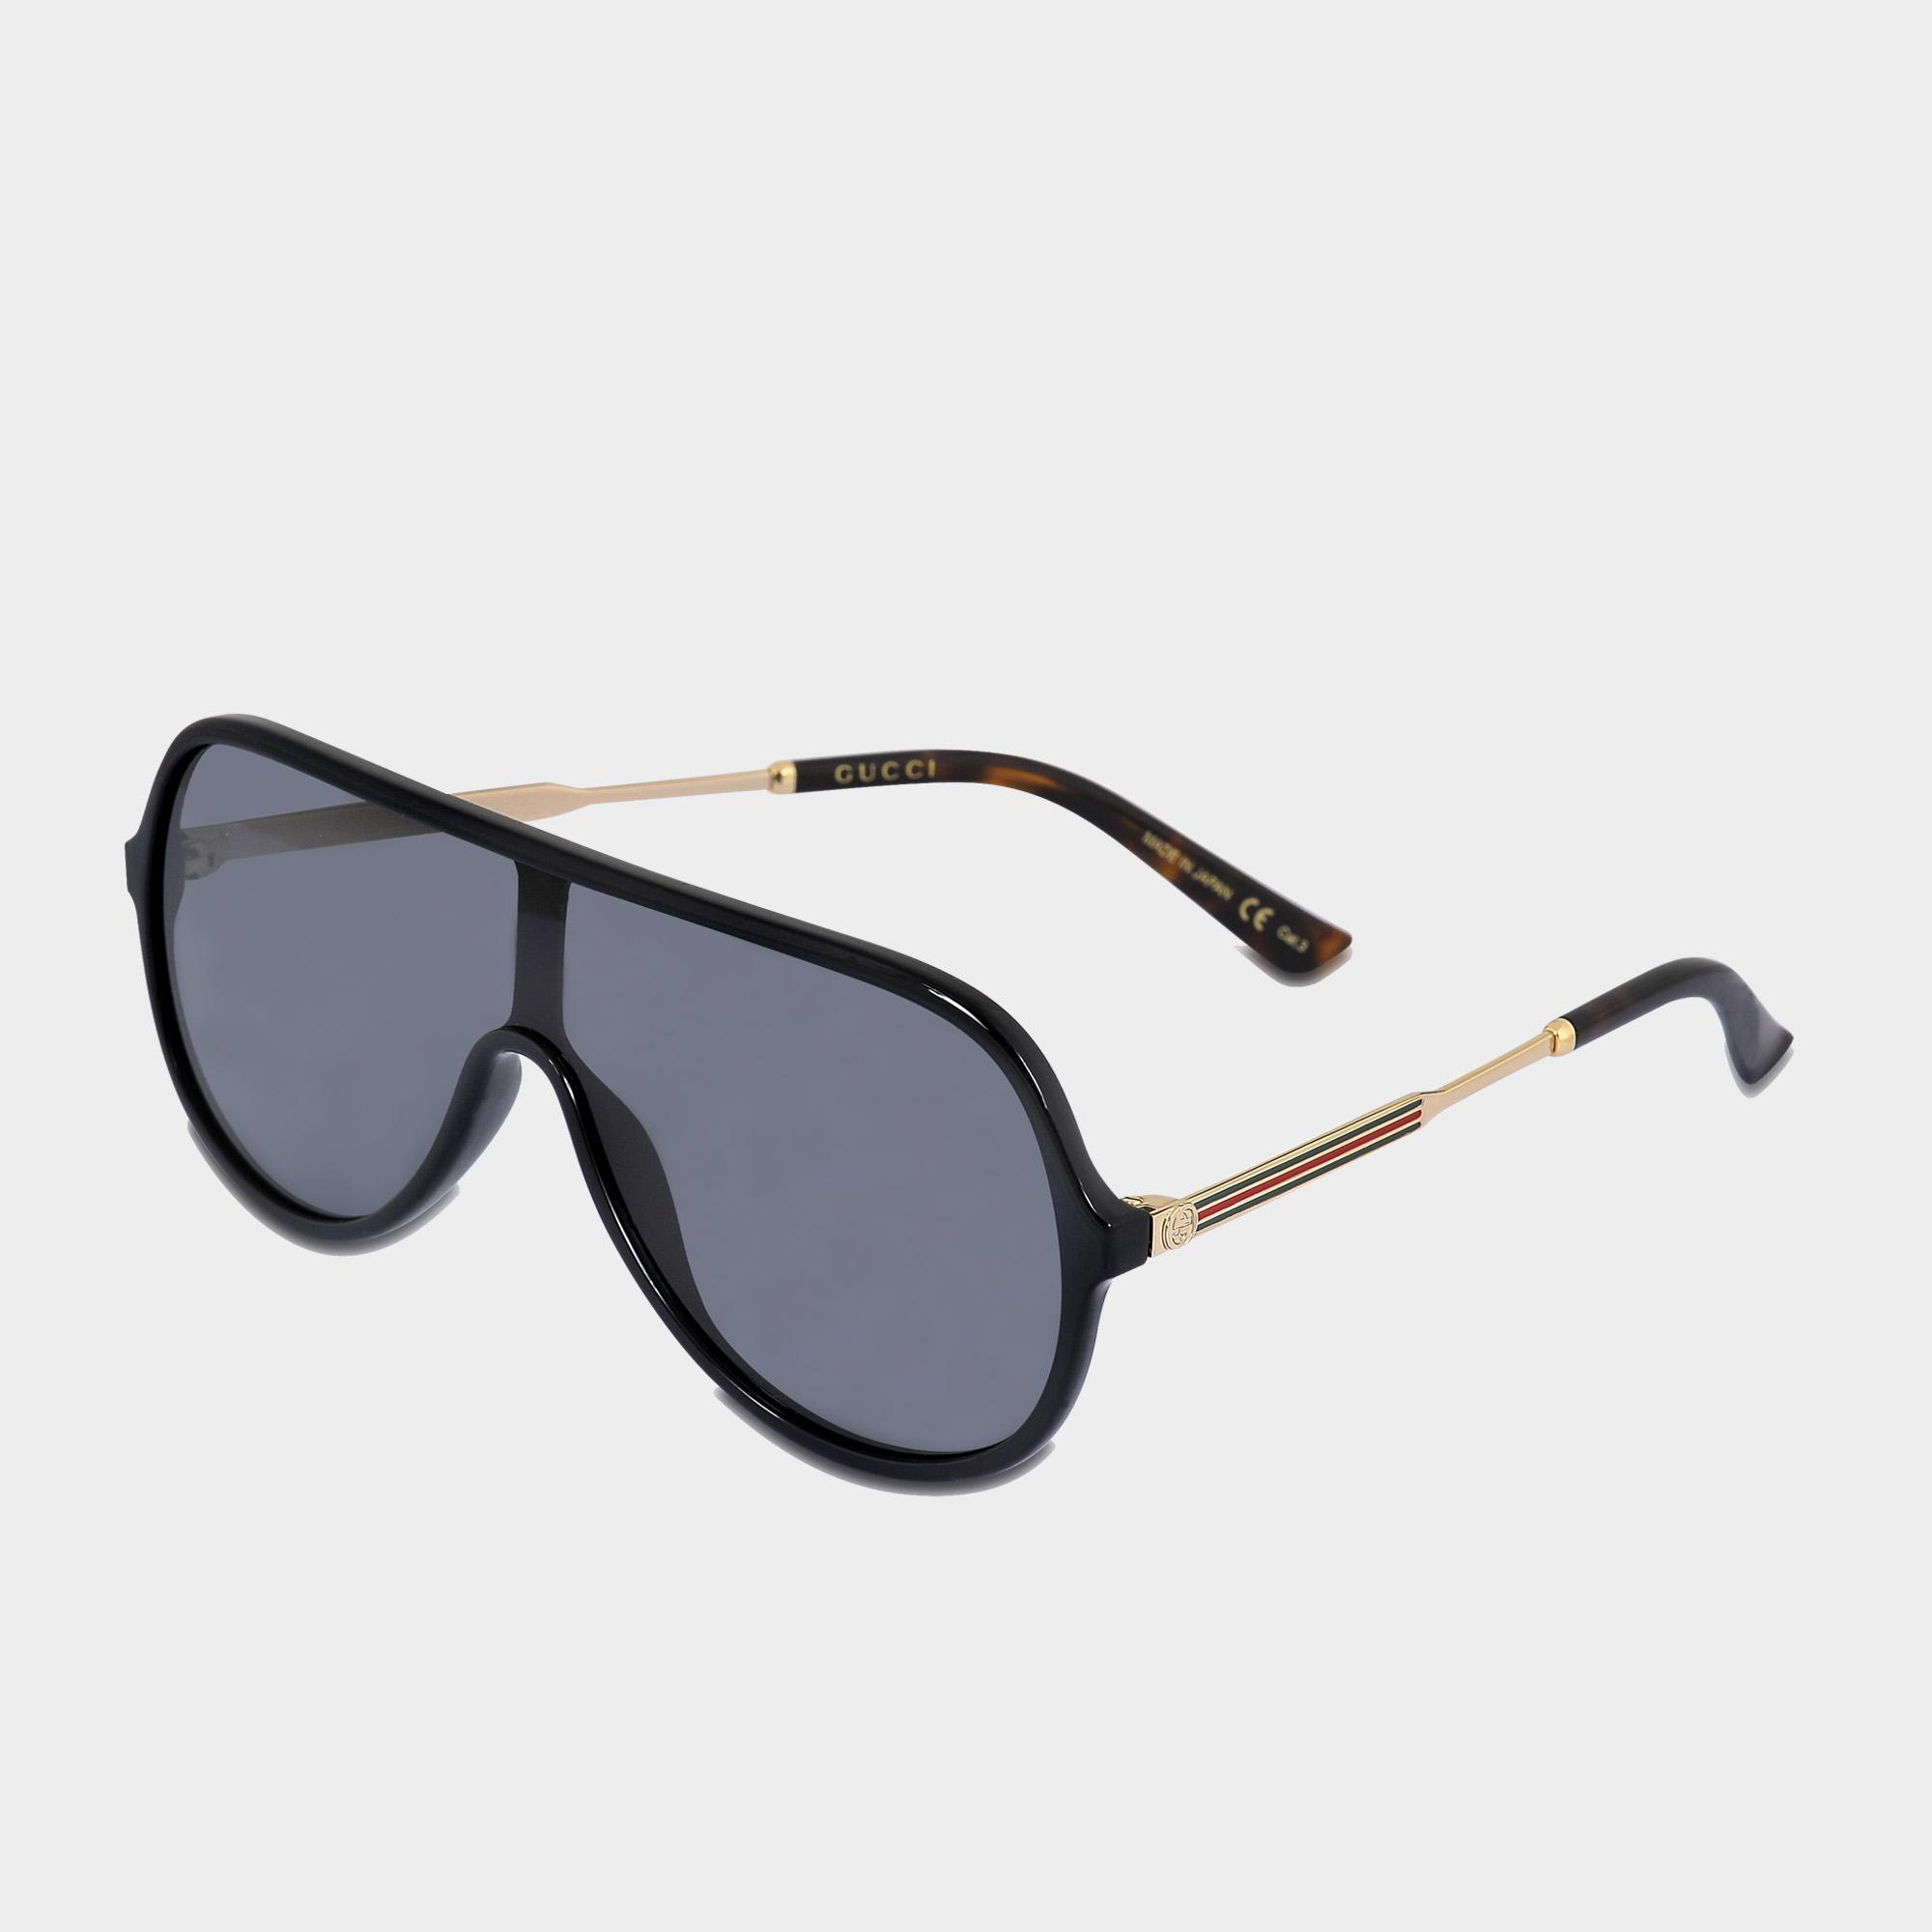 6c6e8488f7 Gucci Aviator Sunglasses In Shiny Endura Gold-dark Havana Injection ...